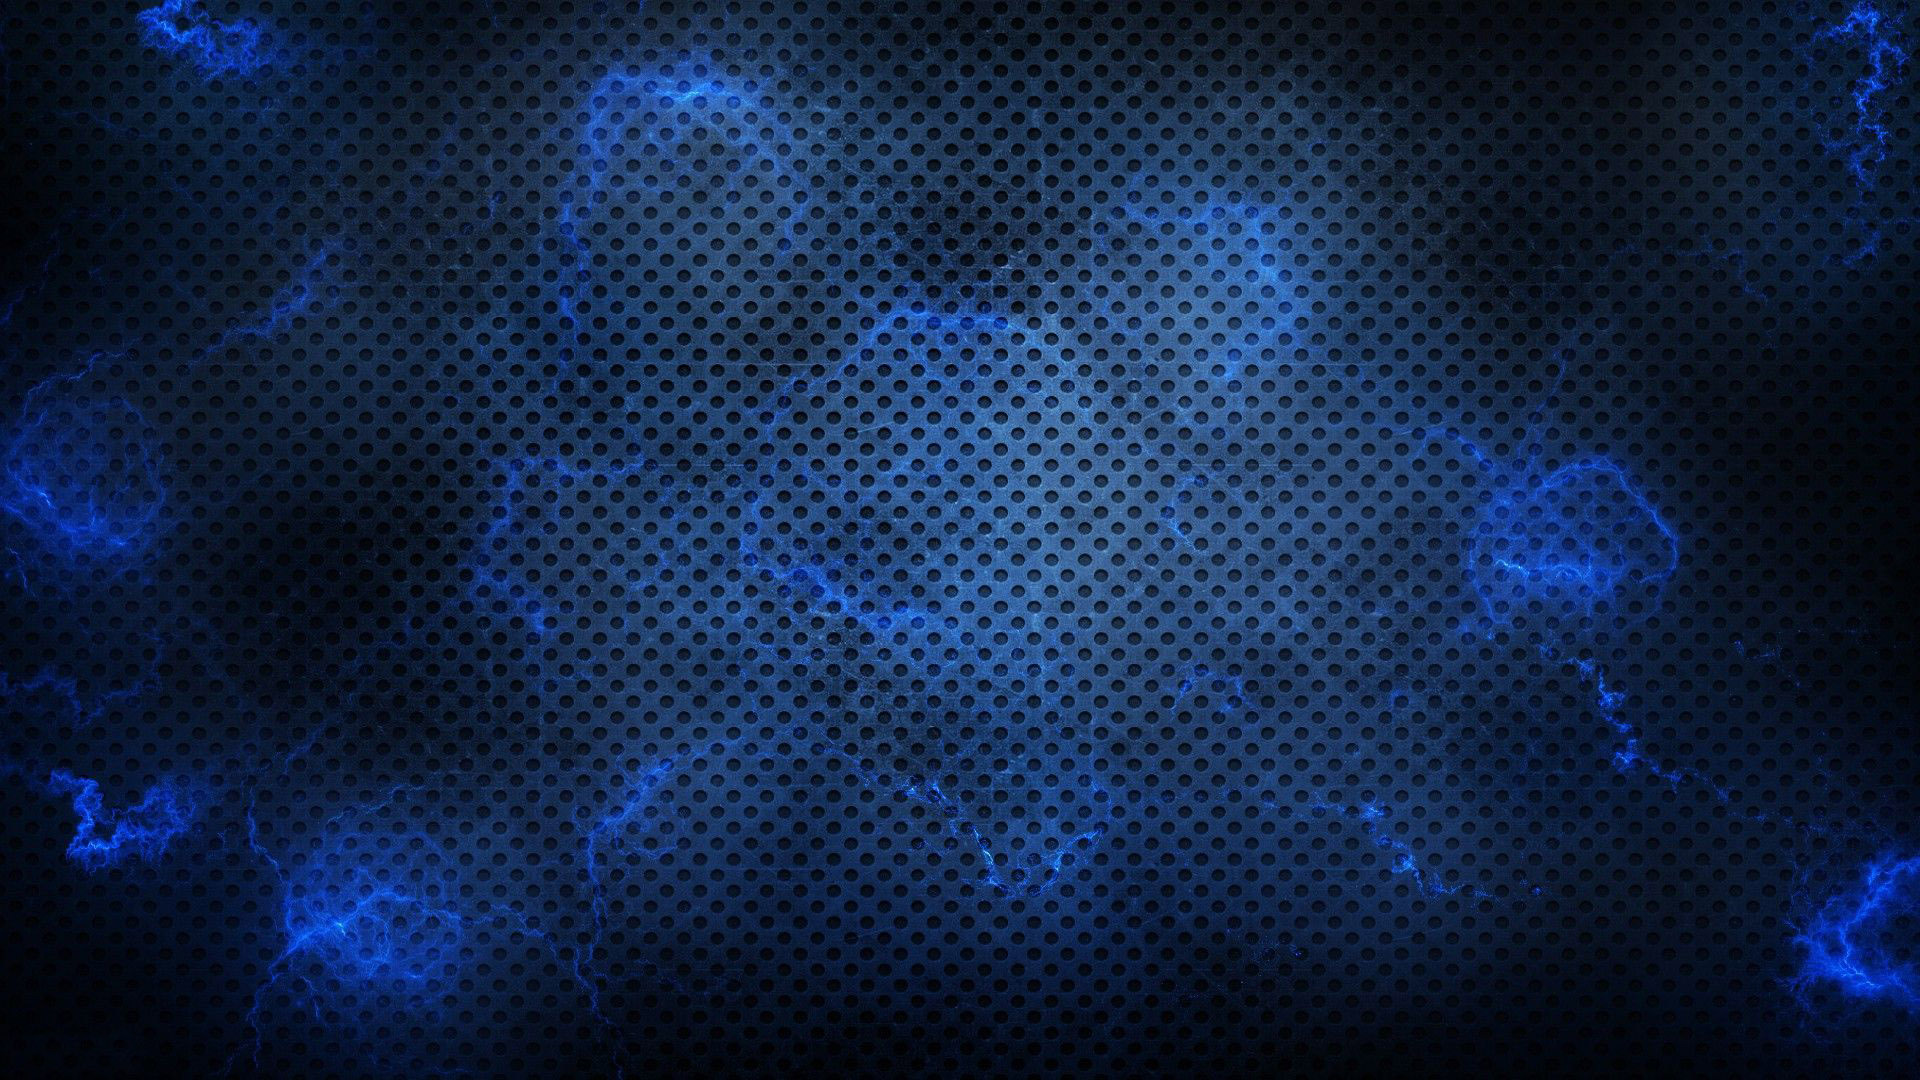 Group of Blue Pattern Hd Wallpaper Widescreen 1920X1080